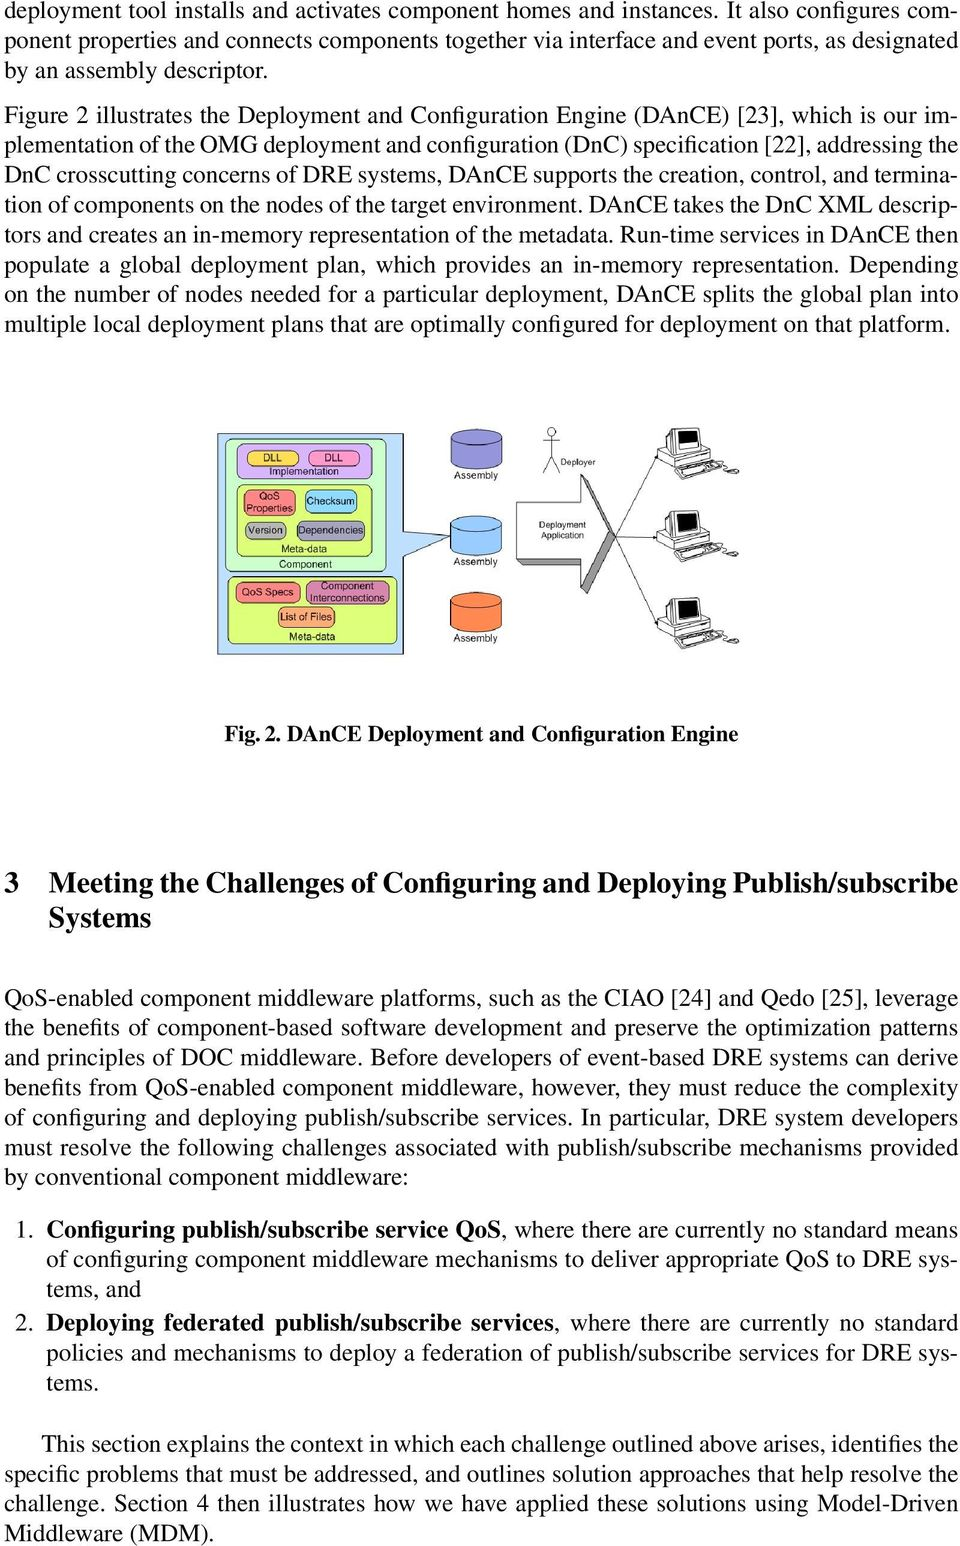 Figure 2 illustrates the Deployment and Configuration Engine (DAnCE) [23], which is our implementation of the OMG deployment and configuration (DnC) specification [22], addressing the DnC